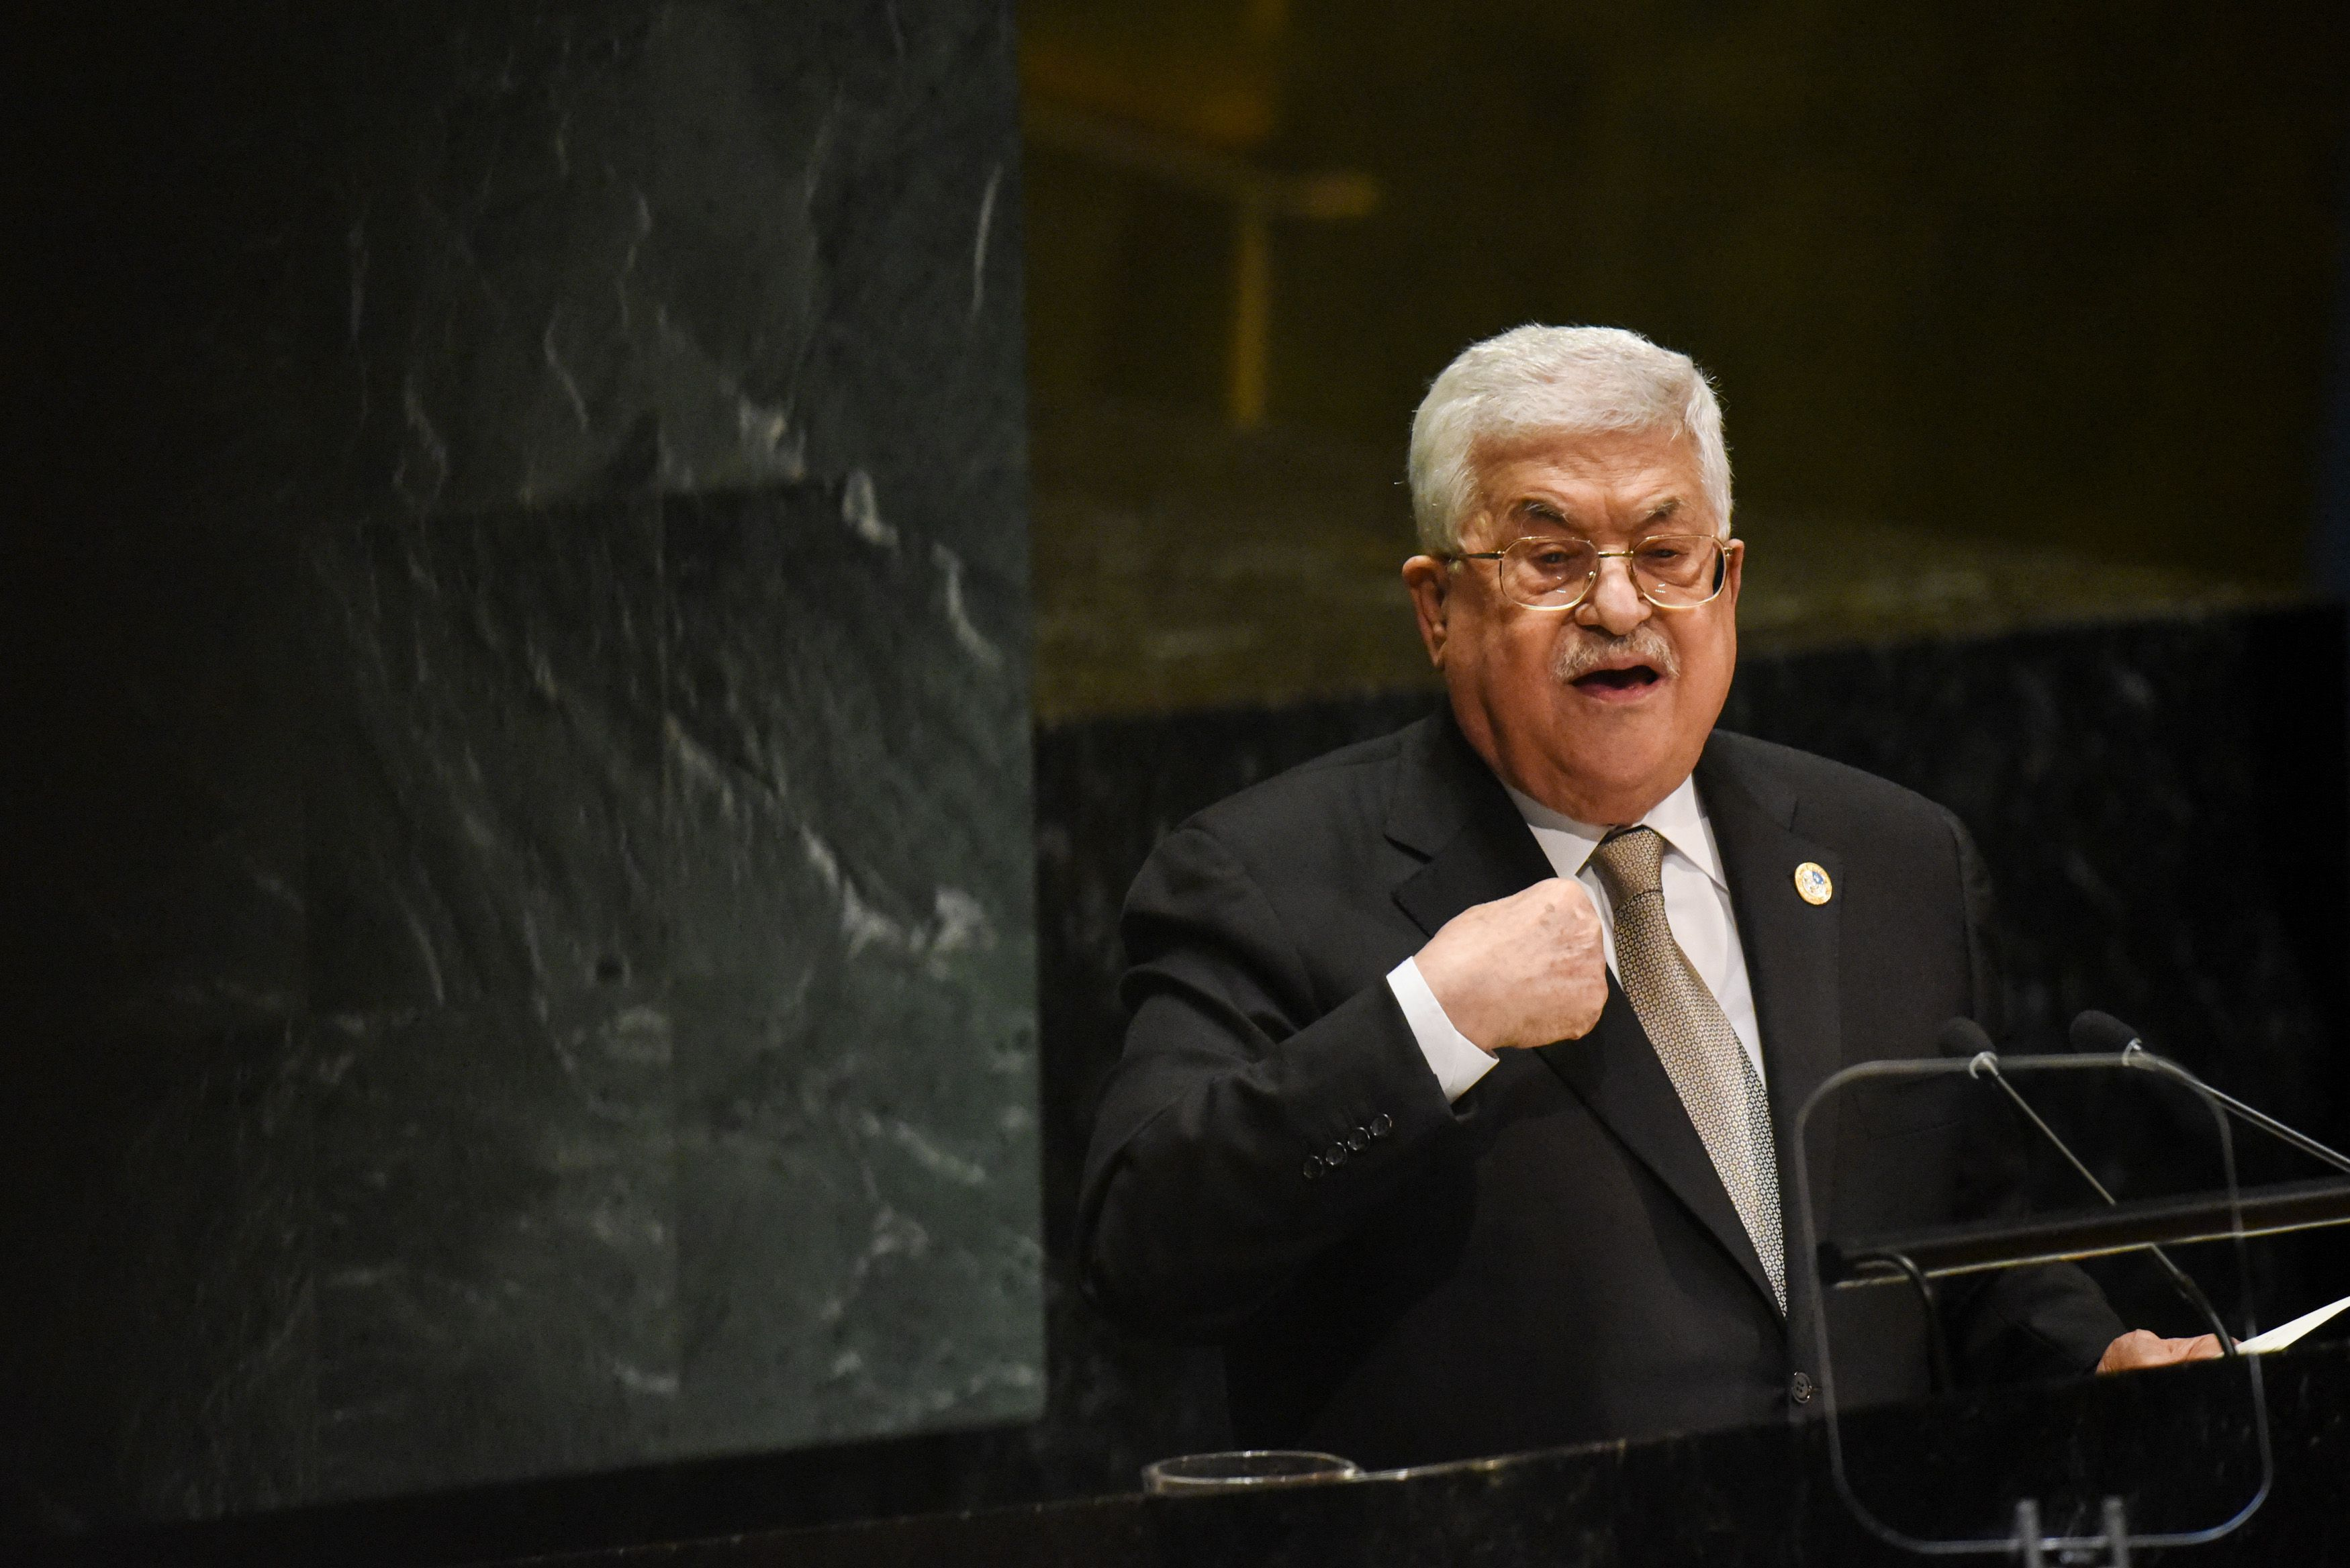 Palestinians struggle to rally opposition to Trump plan at UN Security Council - Axios